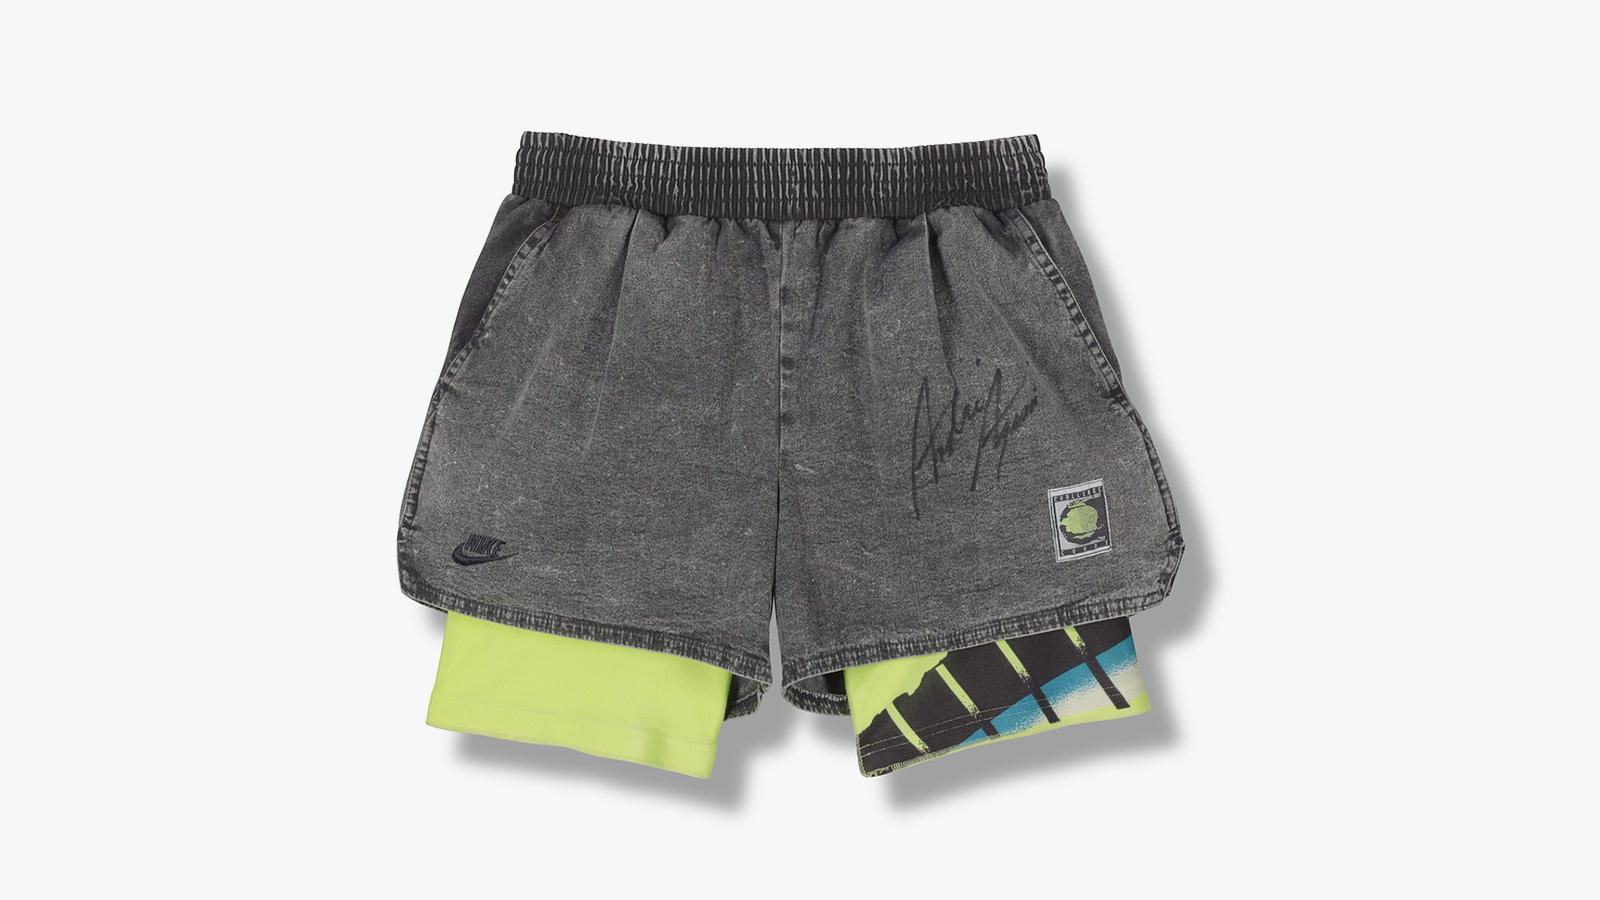 1991-Nike-Statement-Liner-Shorts-Worn-by-Andre-Agassi